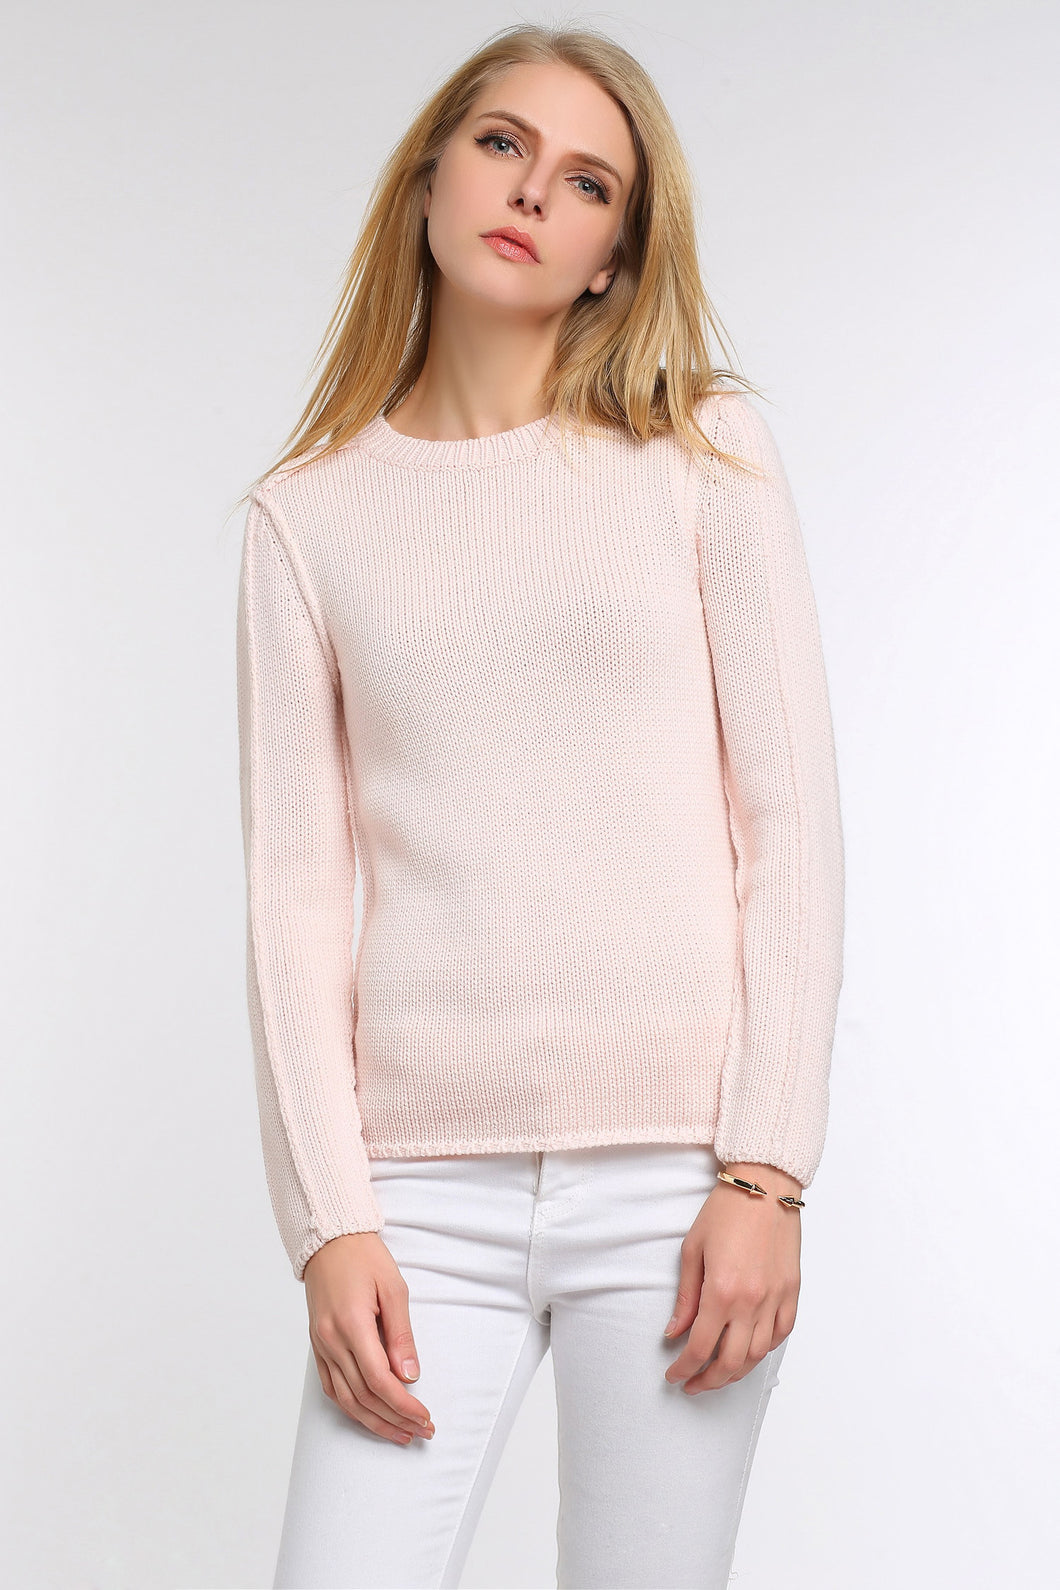 PASTEL-KNIT-SWEATER-LIGHT-PINK-MAIN